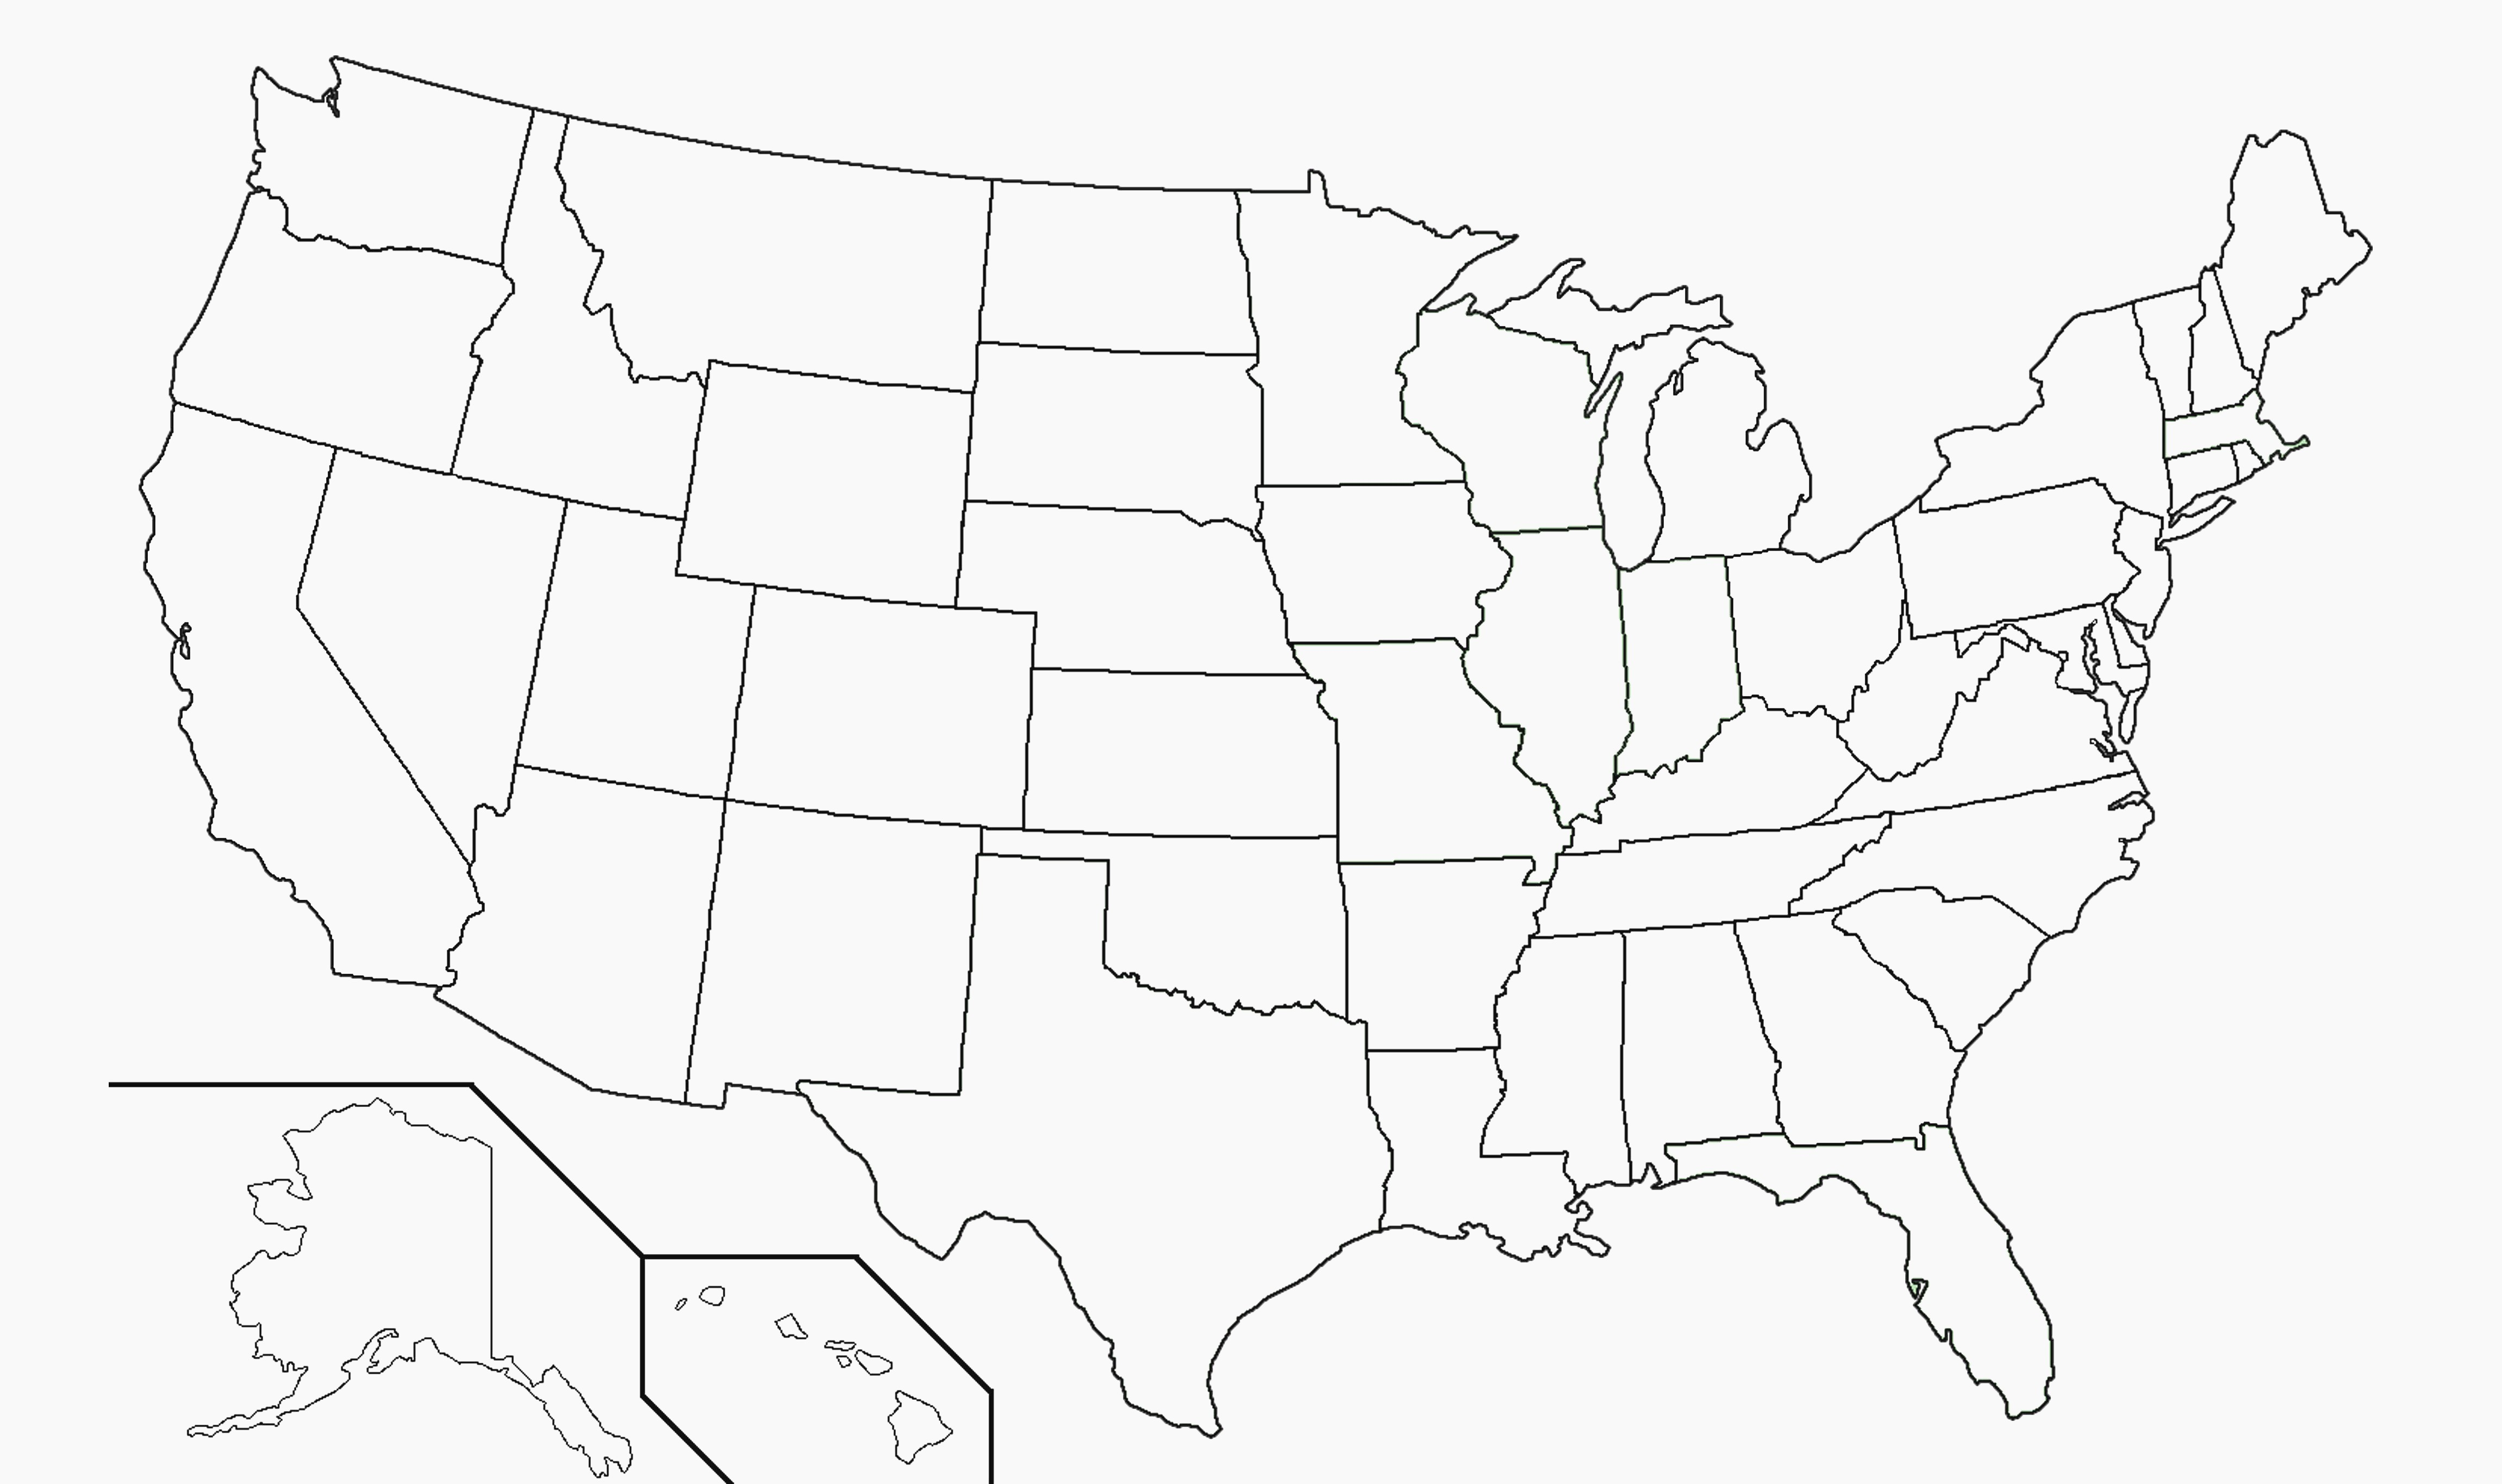 Free Printable Us Map Blank Usa52Blankbwprint Unique Amazing United - Free Printable Map Of The United States